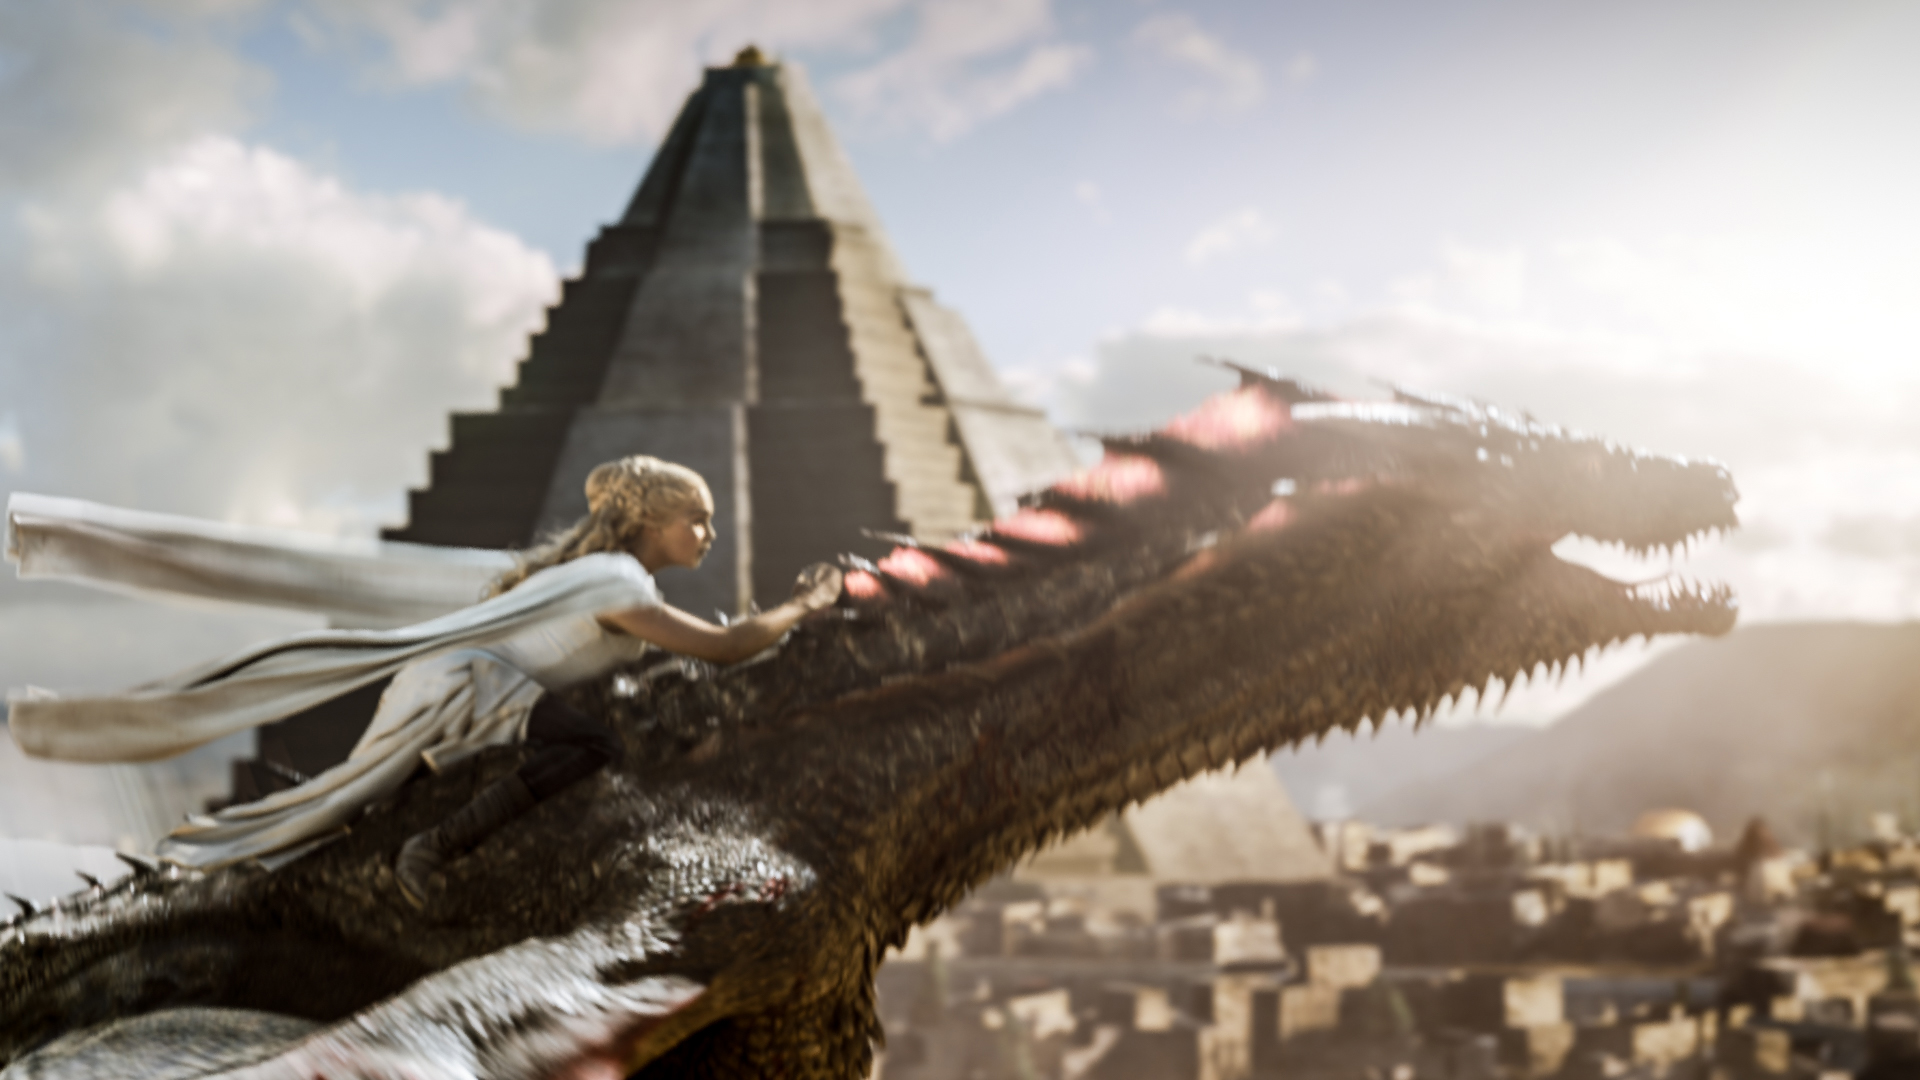 Game of Thrones Daenerys Drogo dragon